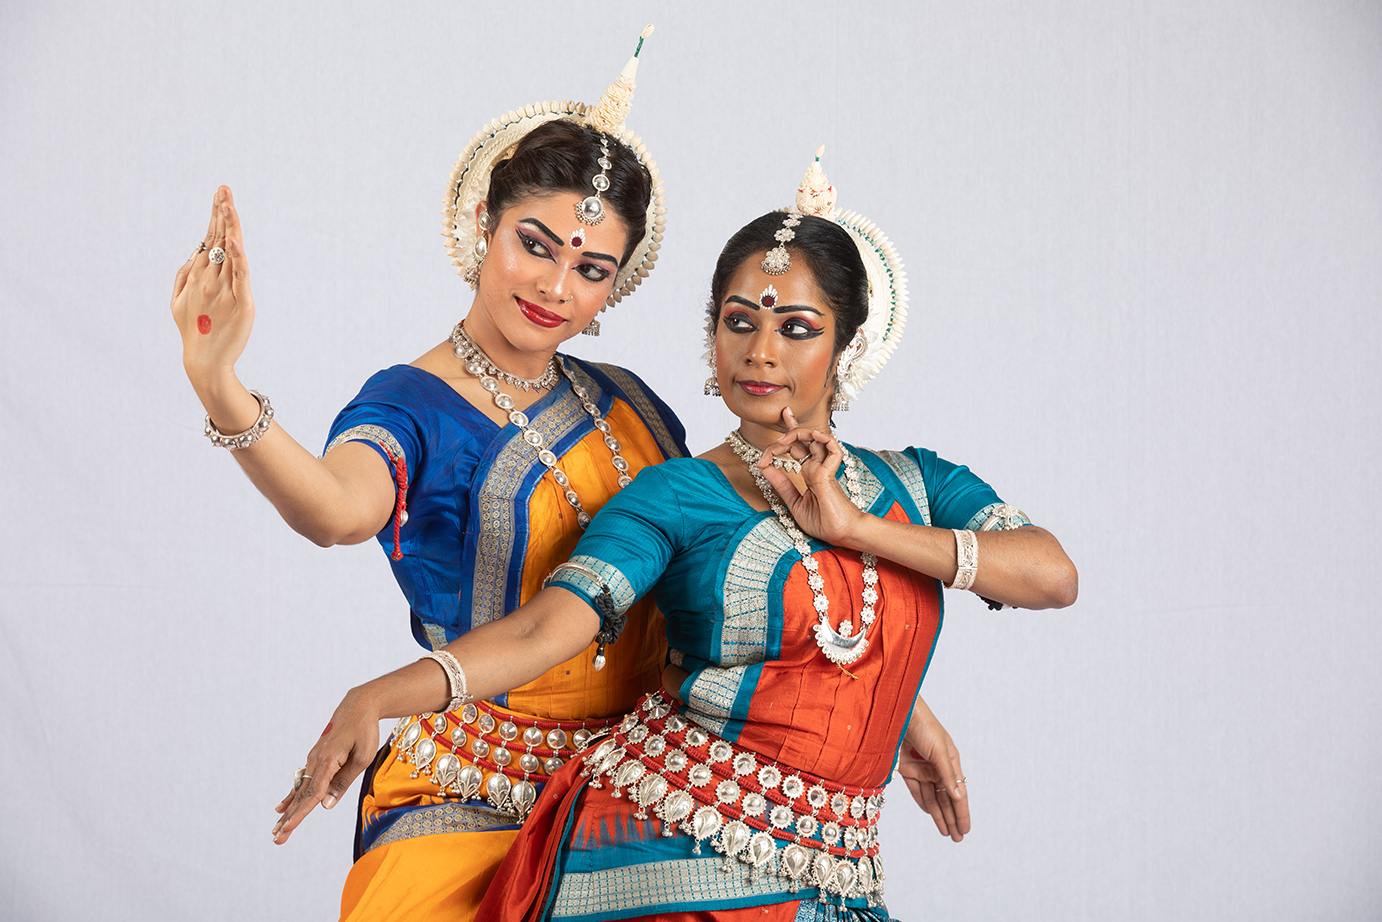 The two Indian classical dancers, Kalaivani Kumareswaran and Aarthi Subash, will focus on the very essence of Odissi — strength coupled with grace. Photo courtesy: Esplanade